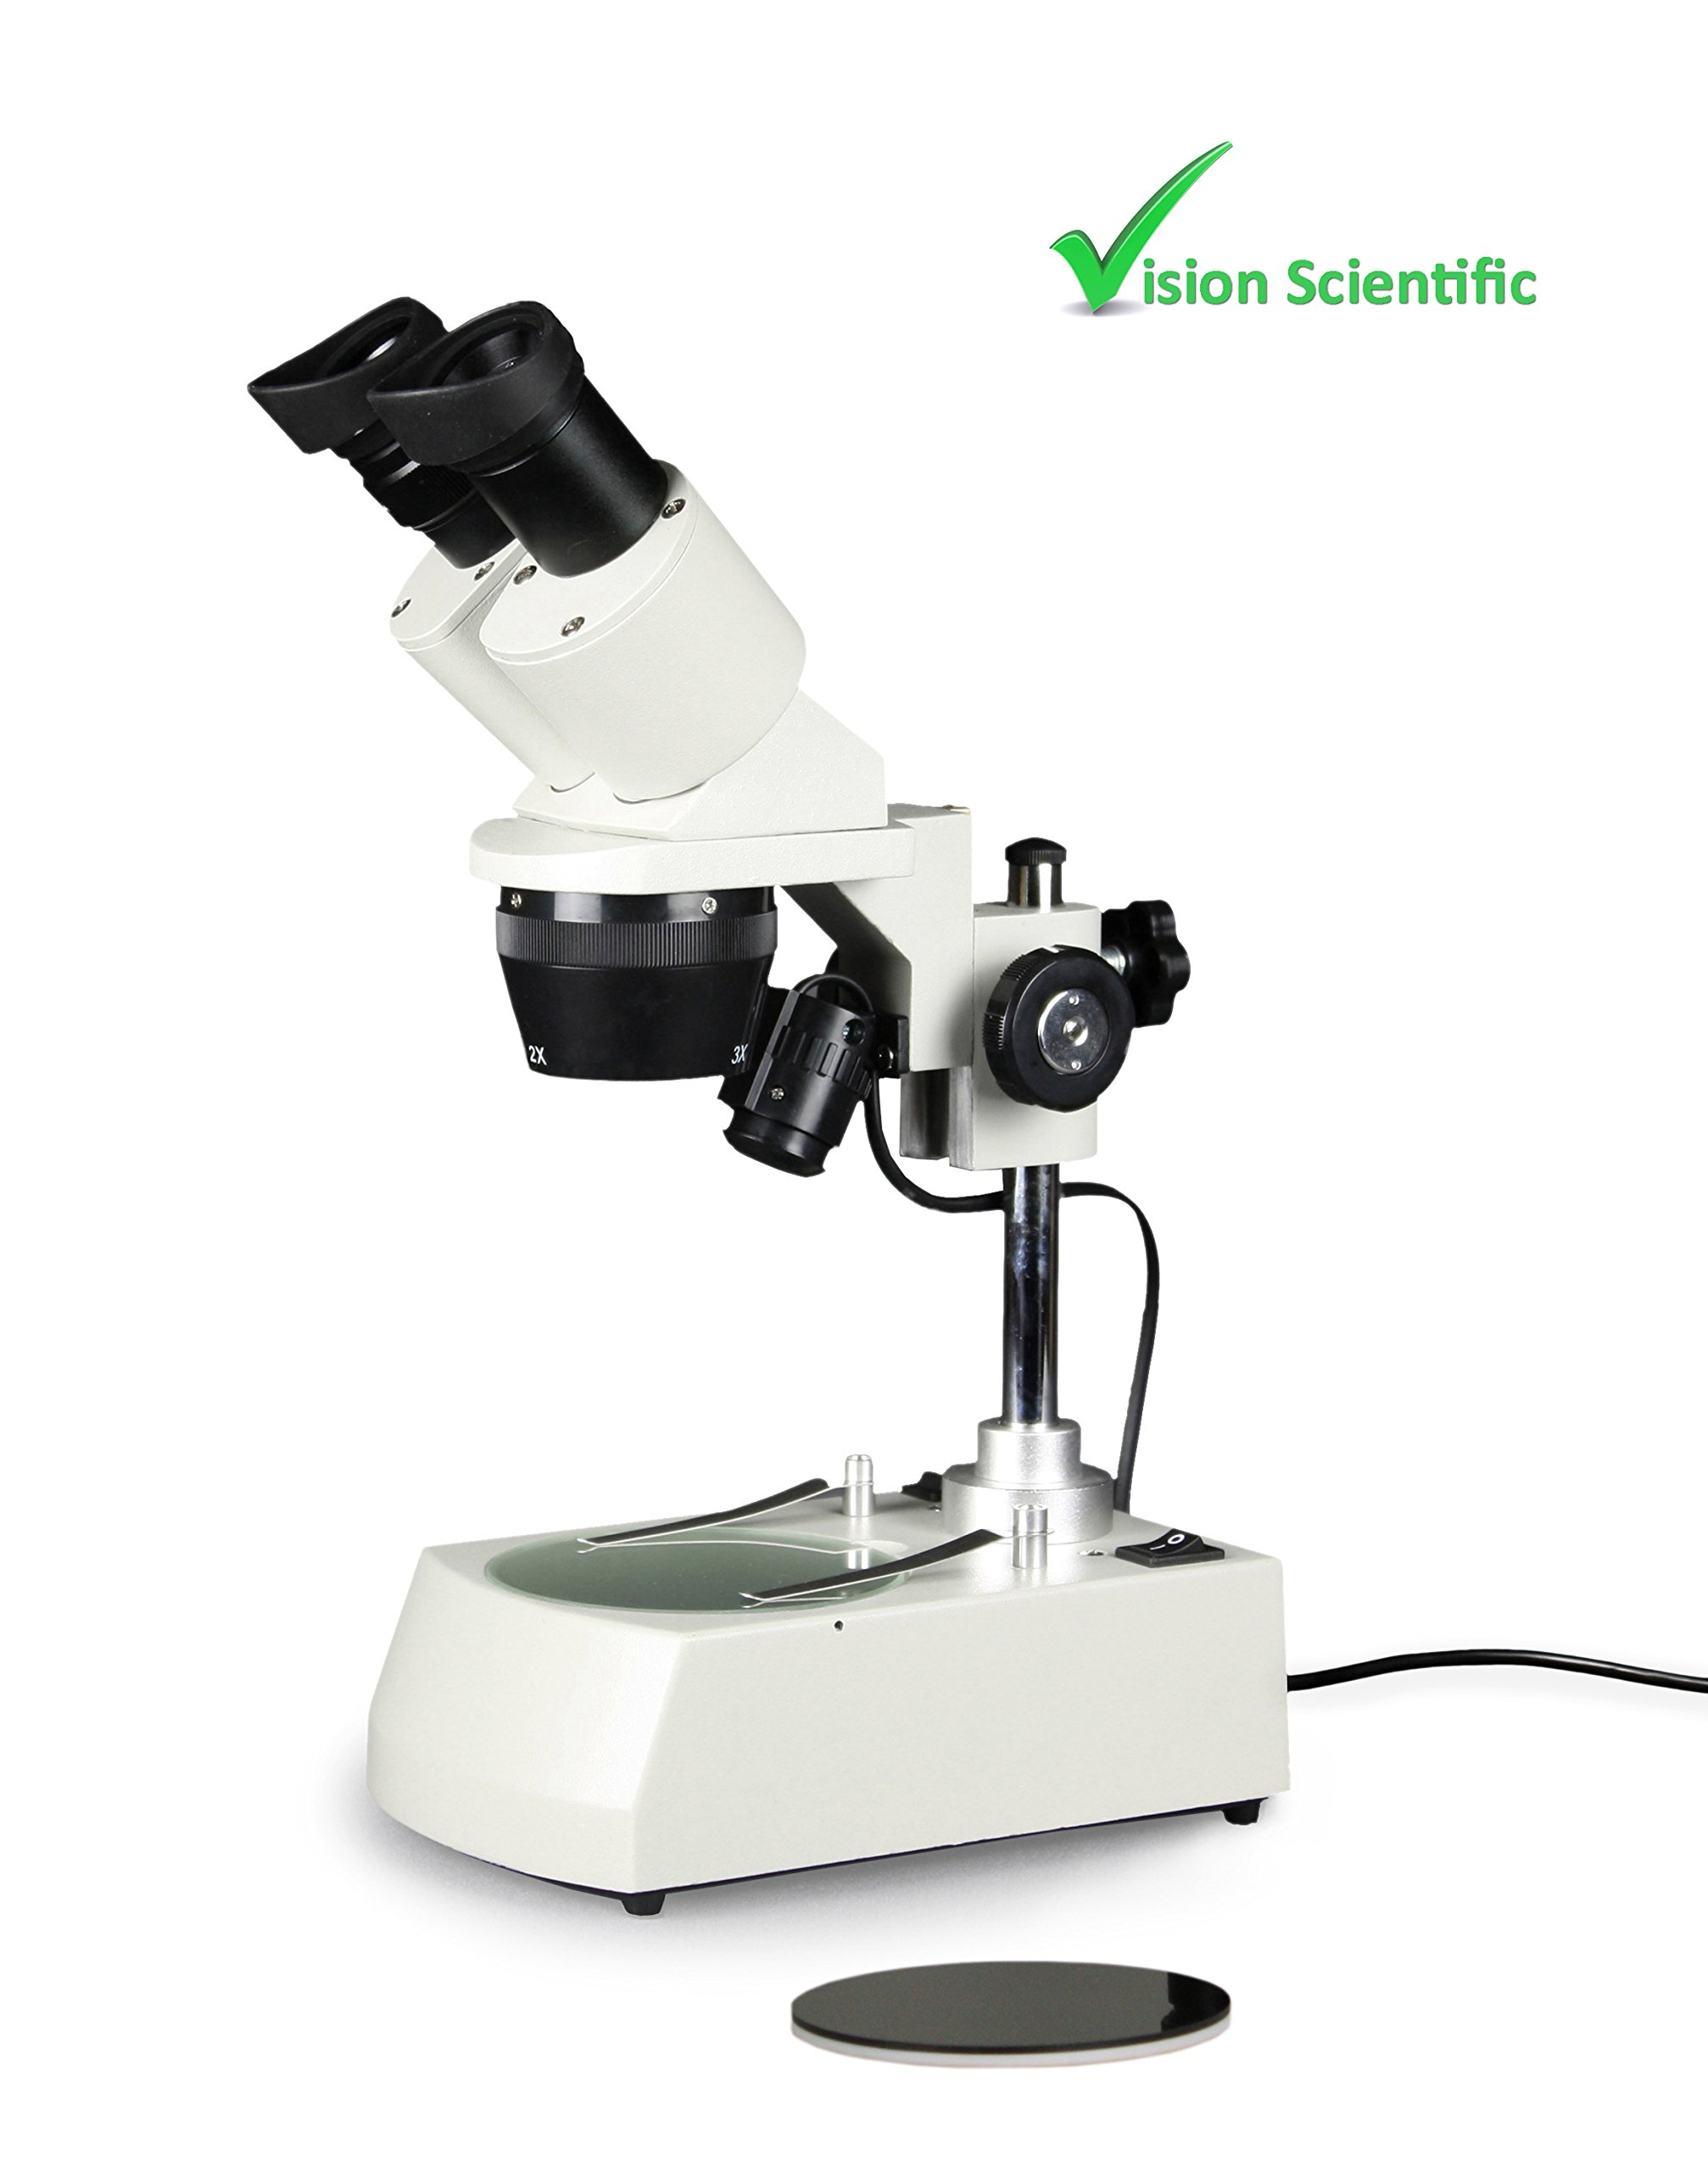 Vision Scientific VMS0002-LD-123 Tri-Power Binocular Stereo Microscope, 1X,2X,3X Objective, Paired 10X WF Eyepiece, 10X - 20x - 30X Magnification, Top and Bottom LED Illumination, Post-Mounted Stand by Vision Scientific